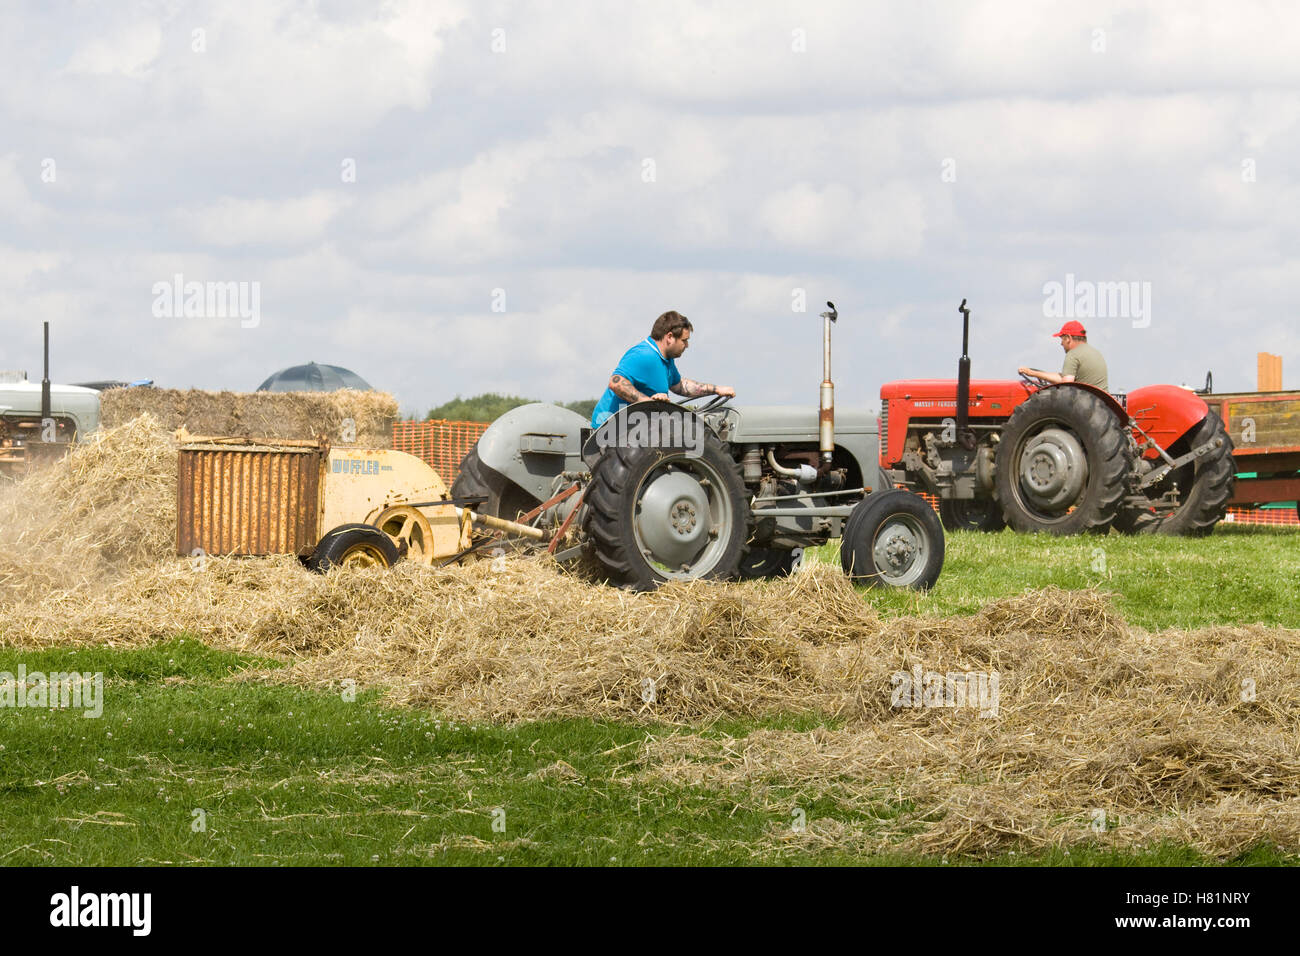 Bamford Wuffler Robust Hay Making Machine, being pulled by a Tractor - Stock Image